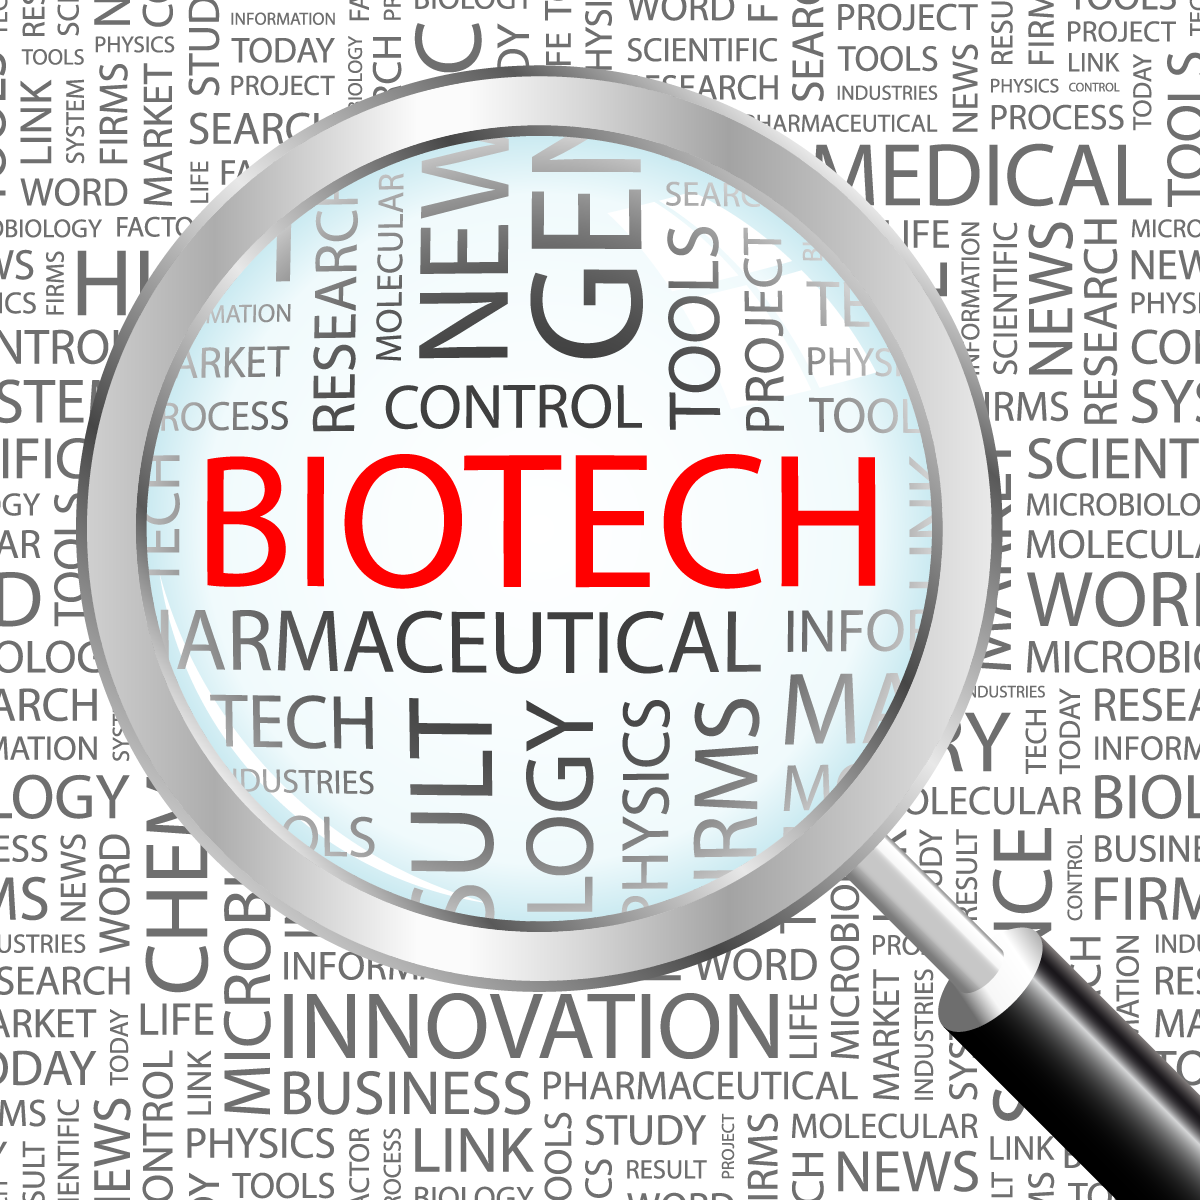 History vector background. Our biotechlogic inc biotechgraphic